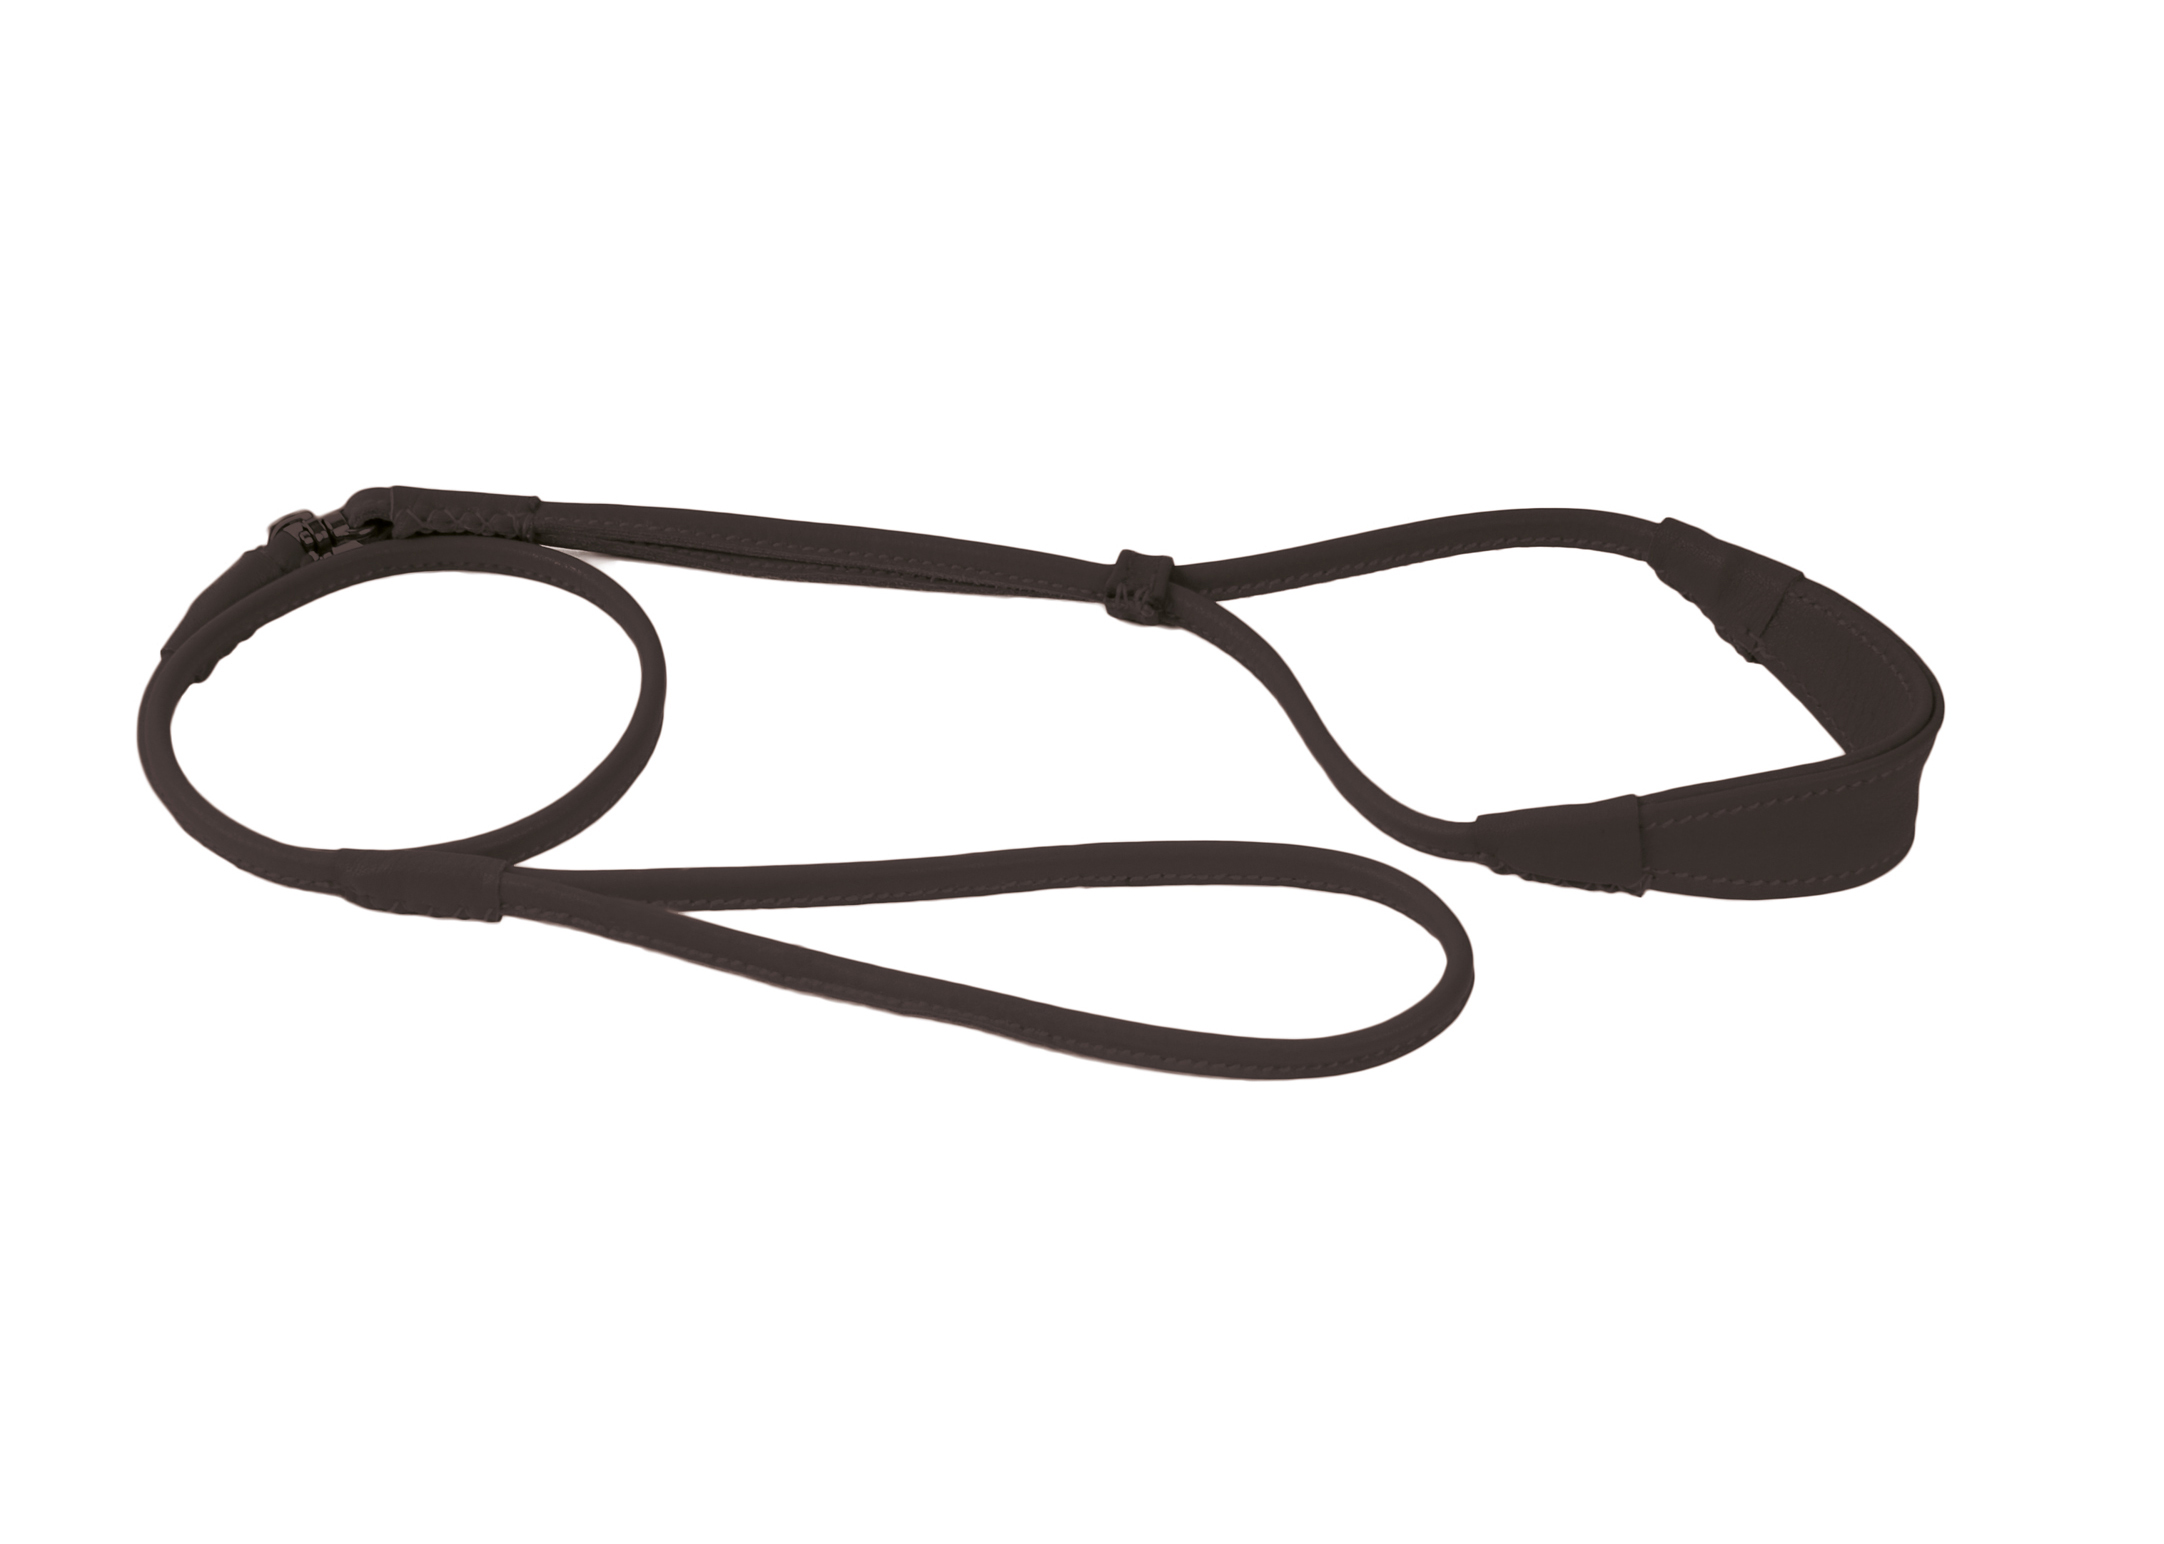 Dapper Dogs Comfort Show Lead Round Cow Leather S 5mm Black Leather Comfort Lead